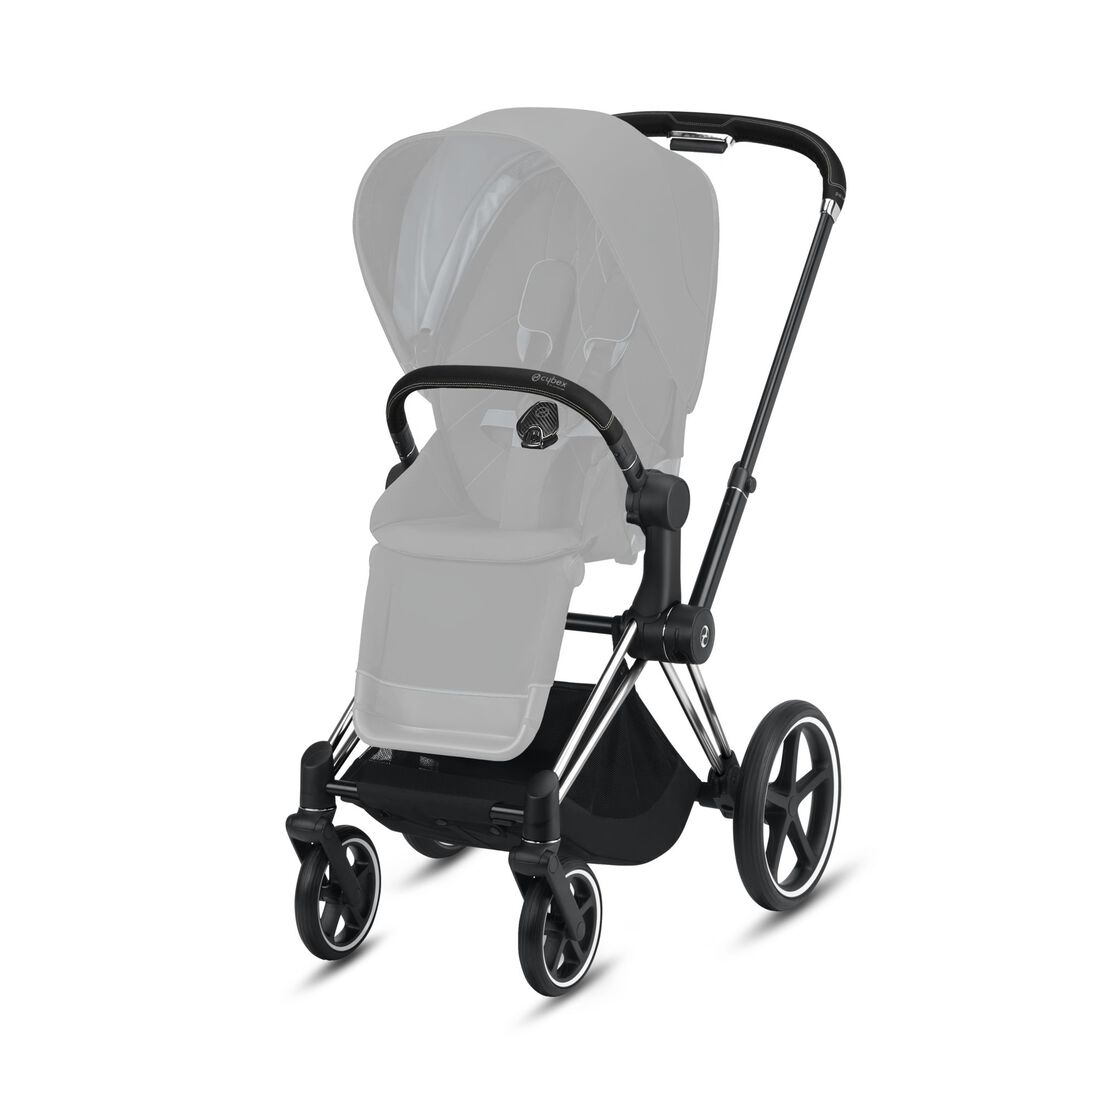 CYBEX Priam Frame - Chrome With Black Details in Chrome With Black Details large image number 2